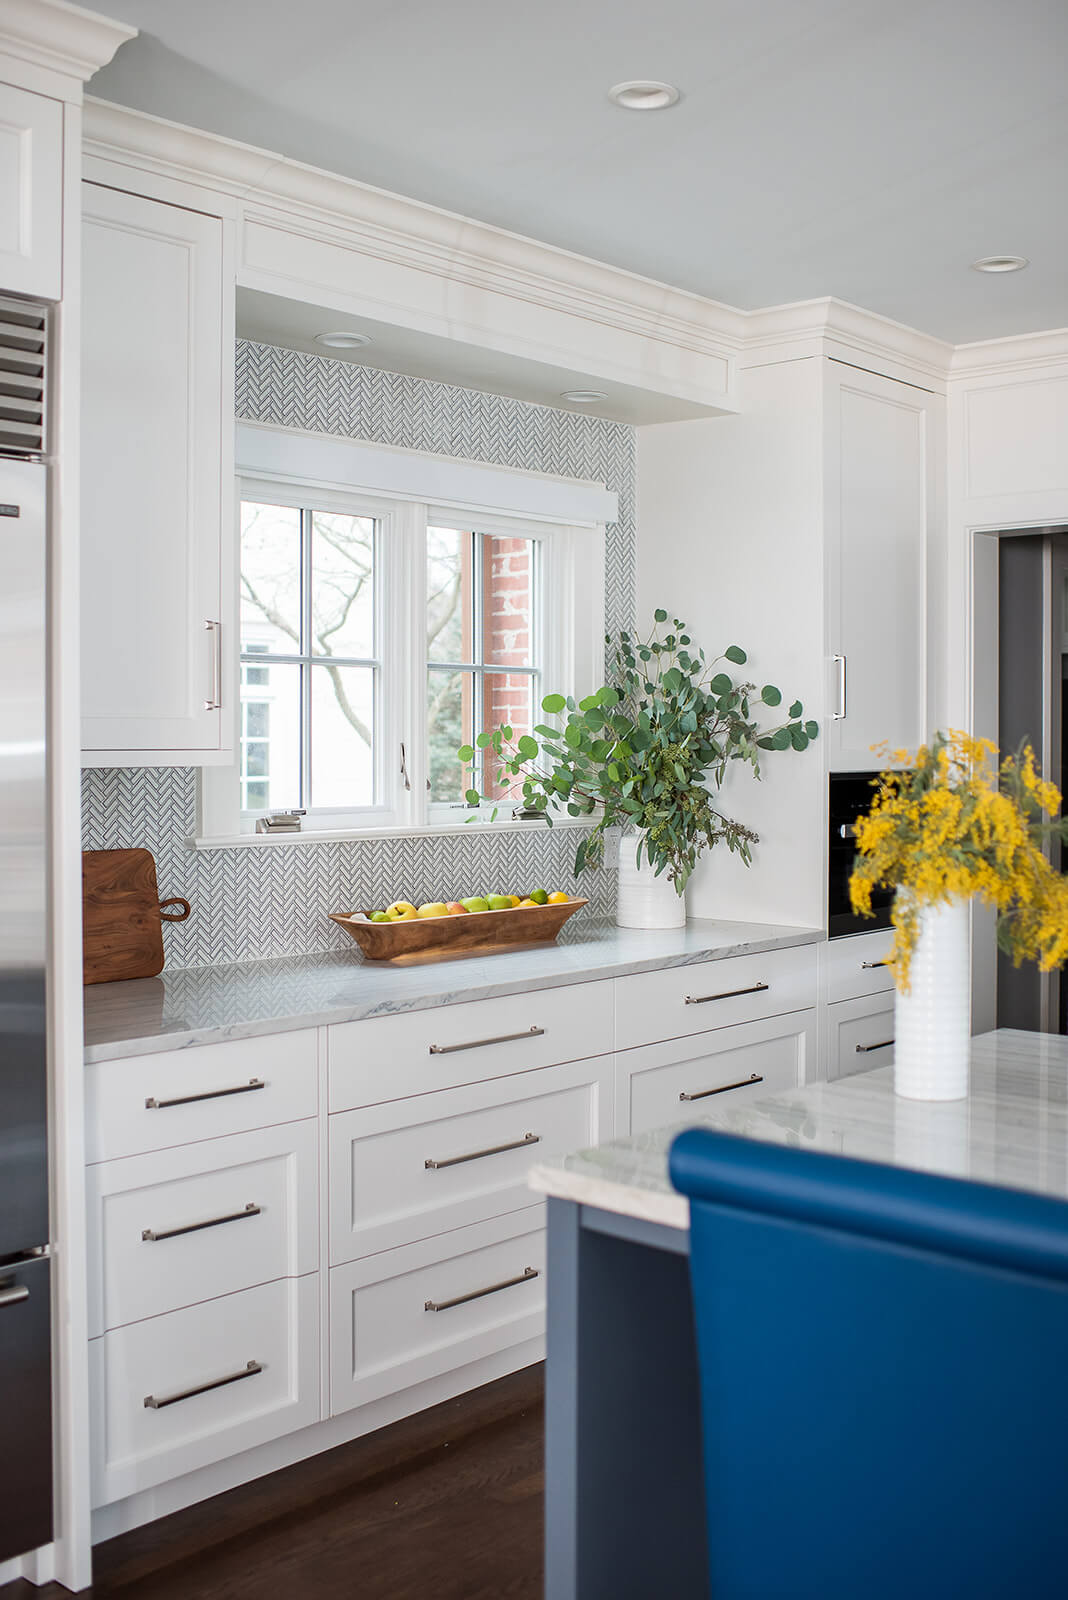 Remodeled & Refreshed by Conceptual Kitchens